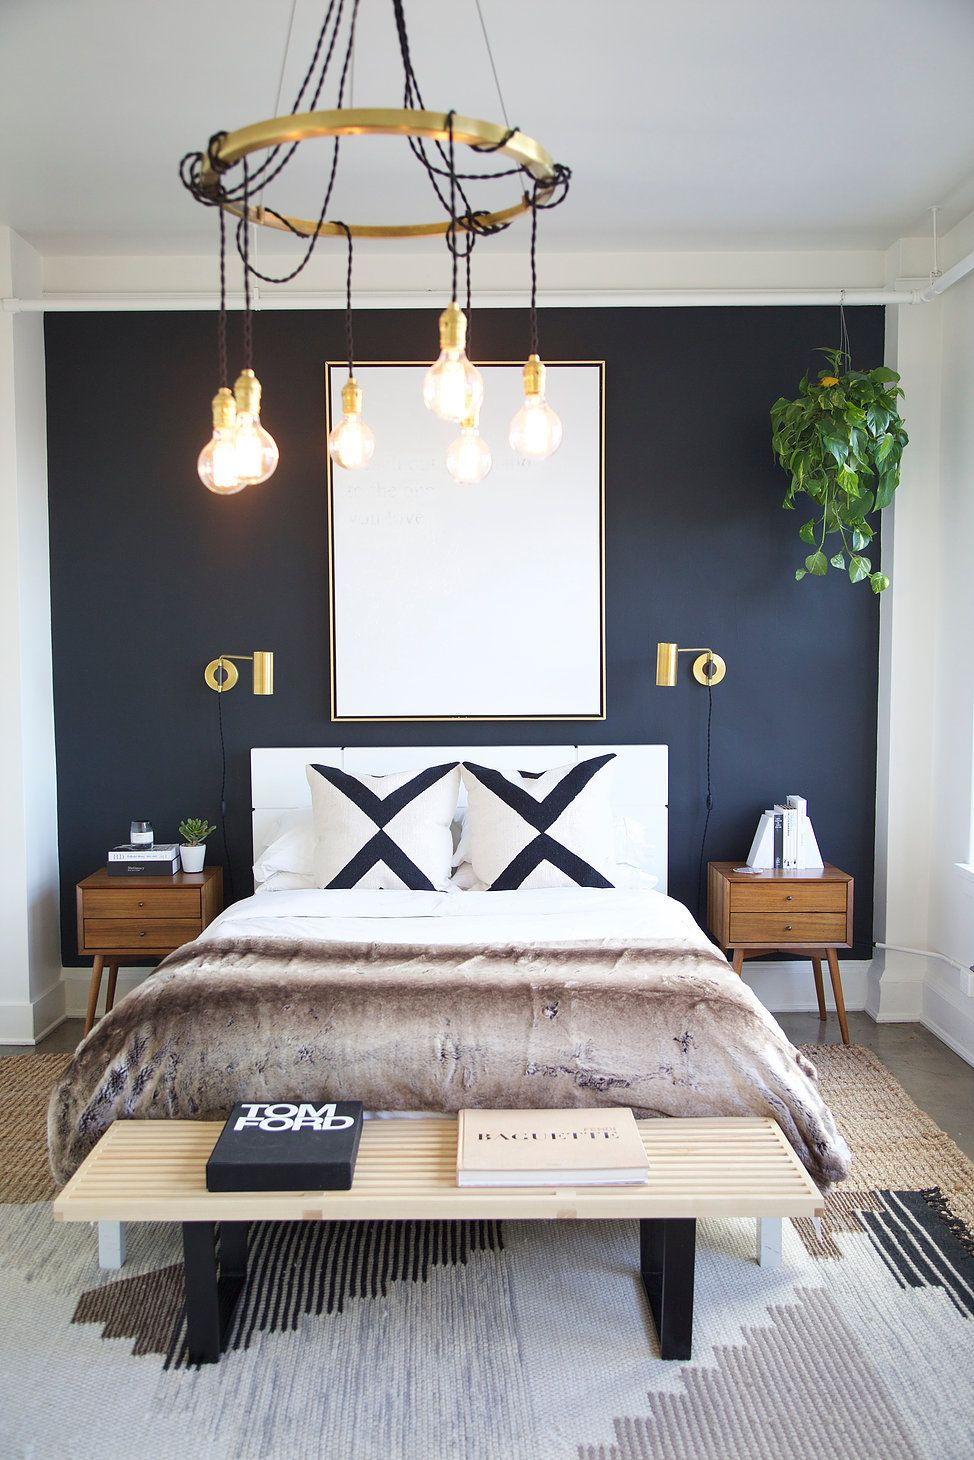 Guest room black accent wall splashes of gold taupes neutrals in the rug linens his hers sconces